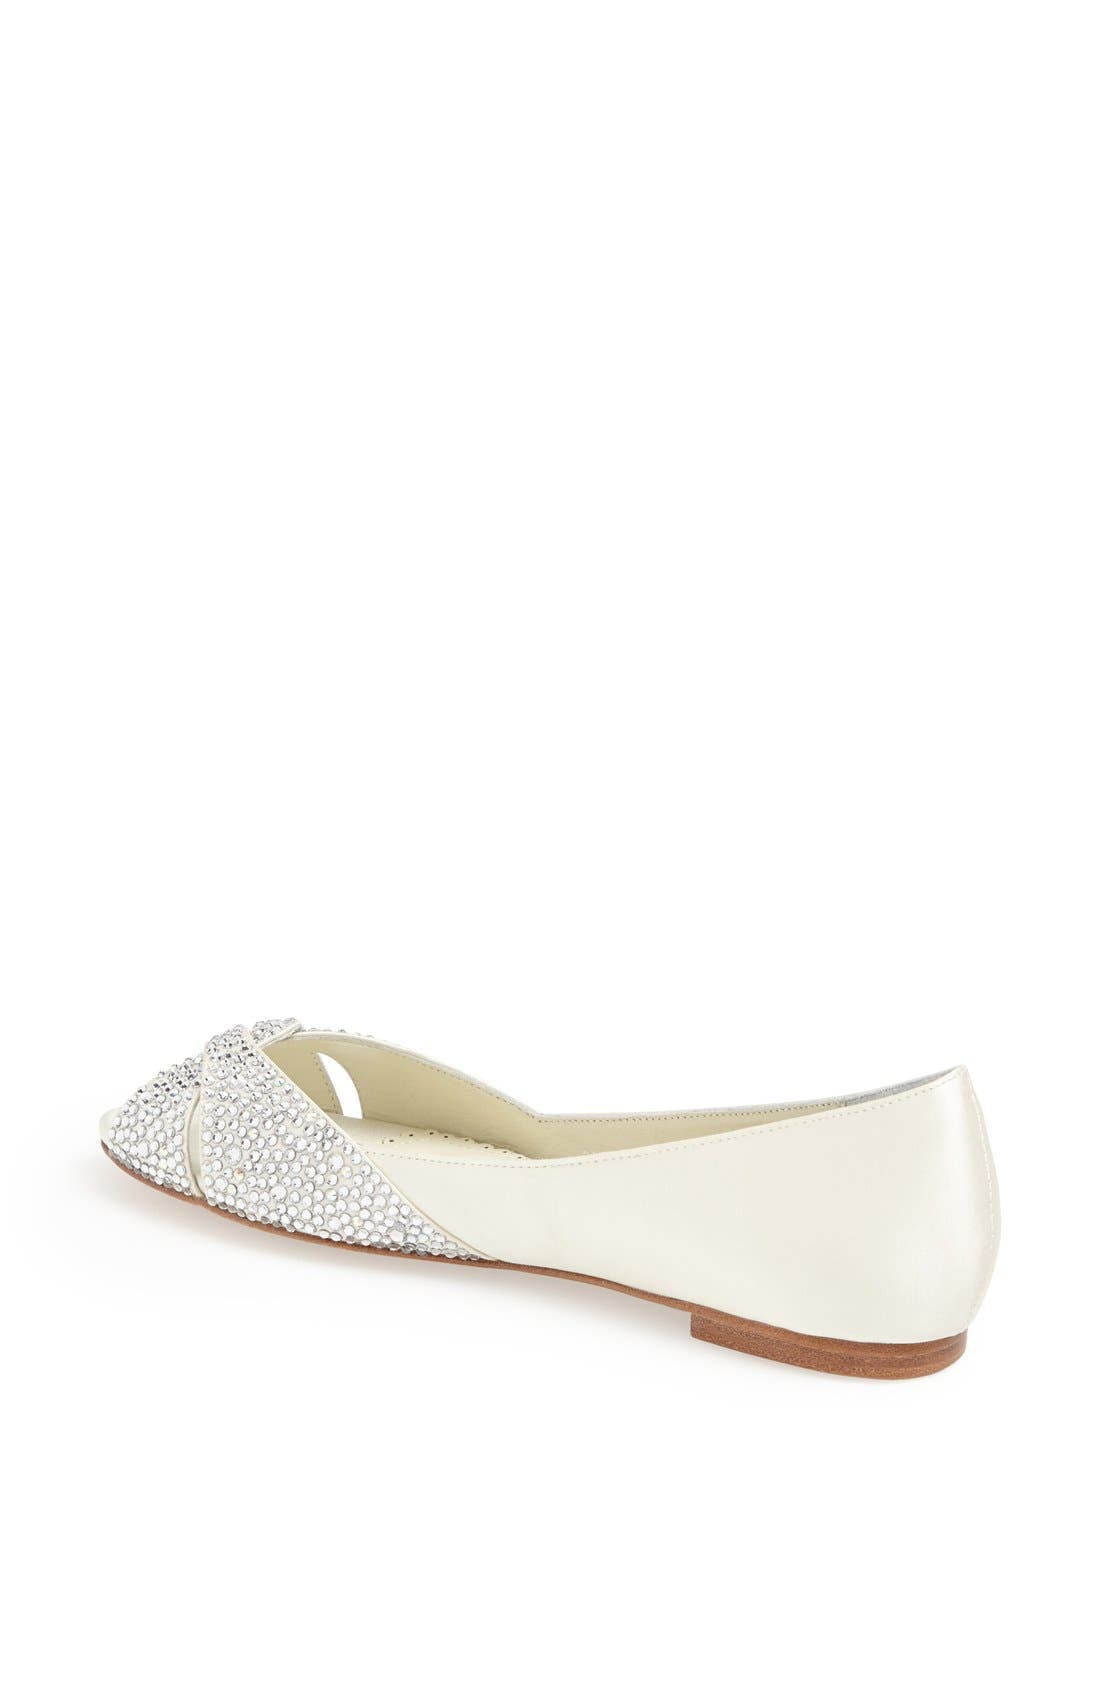 'Andie' Crystal Embellished Peep Toe Flat,                             Alternate thumbnail 2, color,                             Ivory